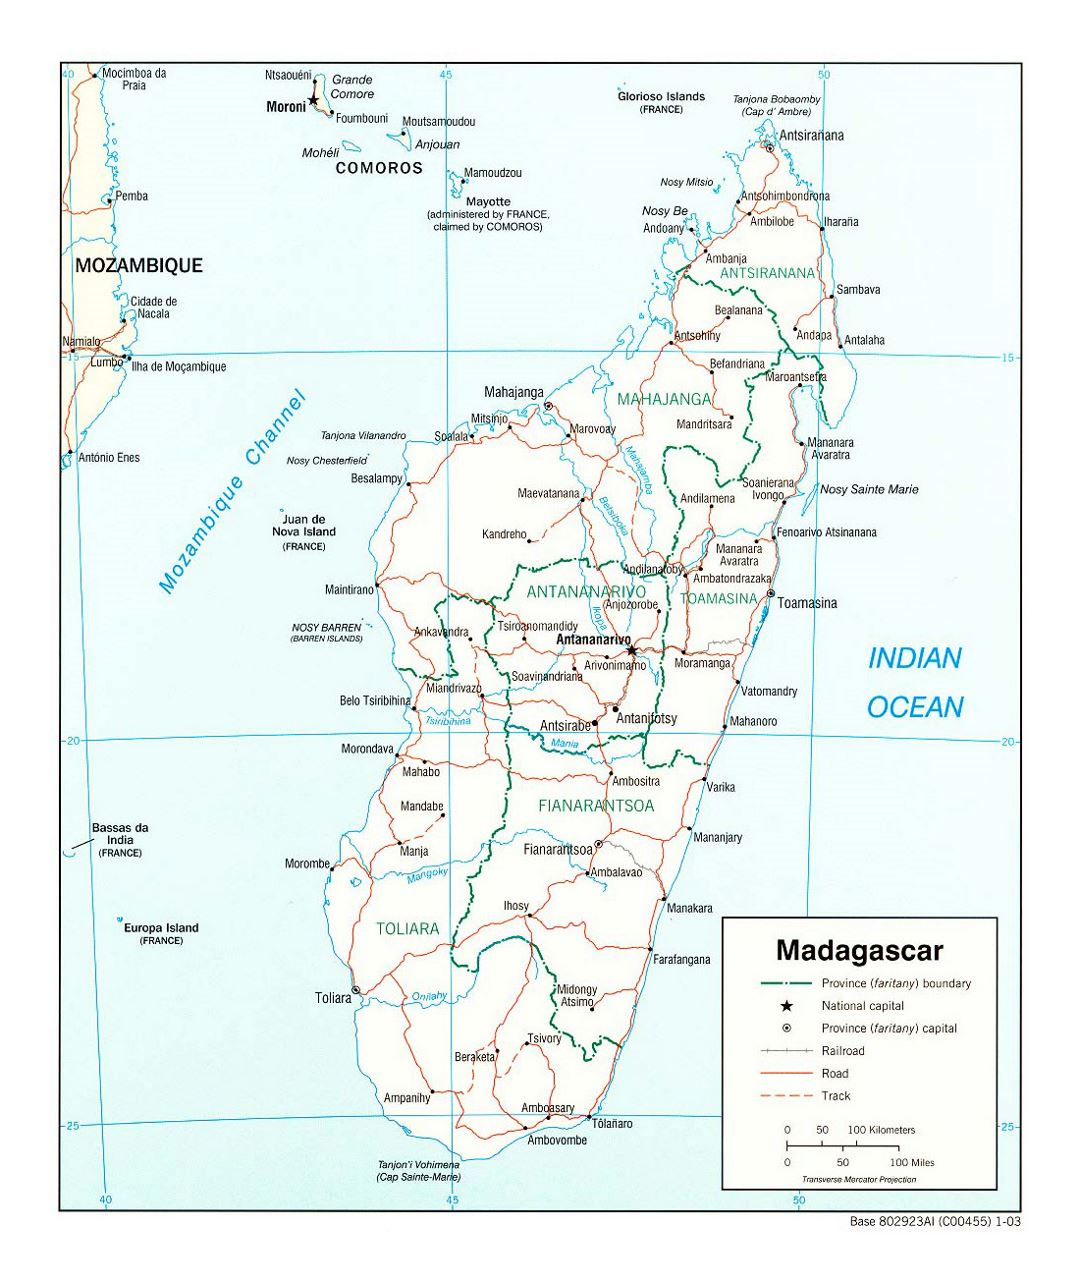 Detailed political and administrative map of Madagascar with roads, railroads and major cities - 2003